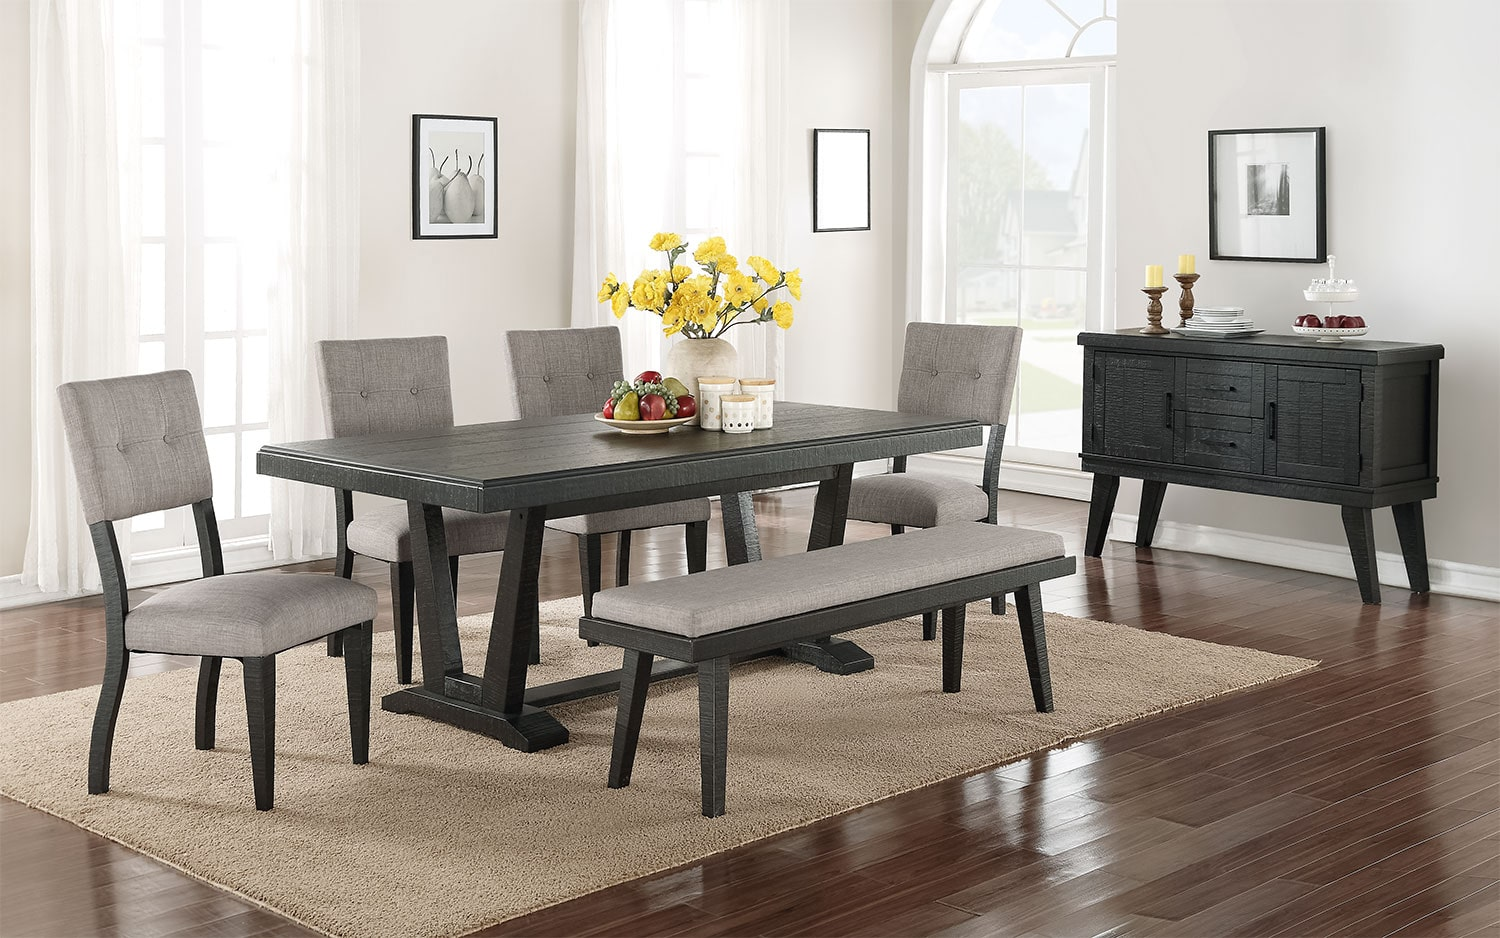 Imari 7 piece dining room set black and grey leon 39 s for Living room ideas with dining table